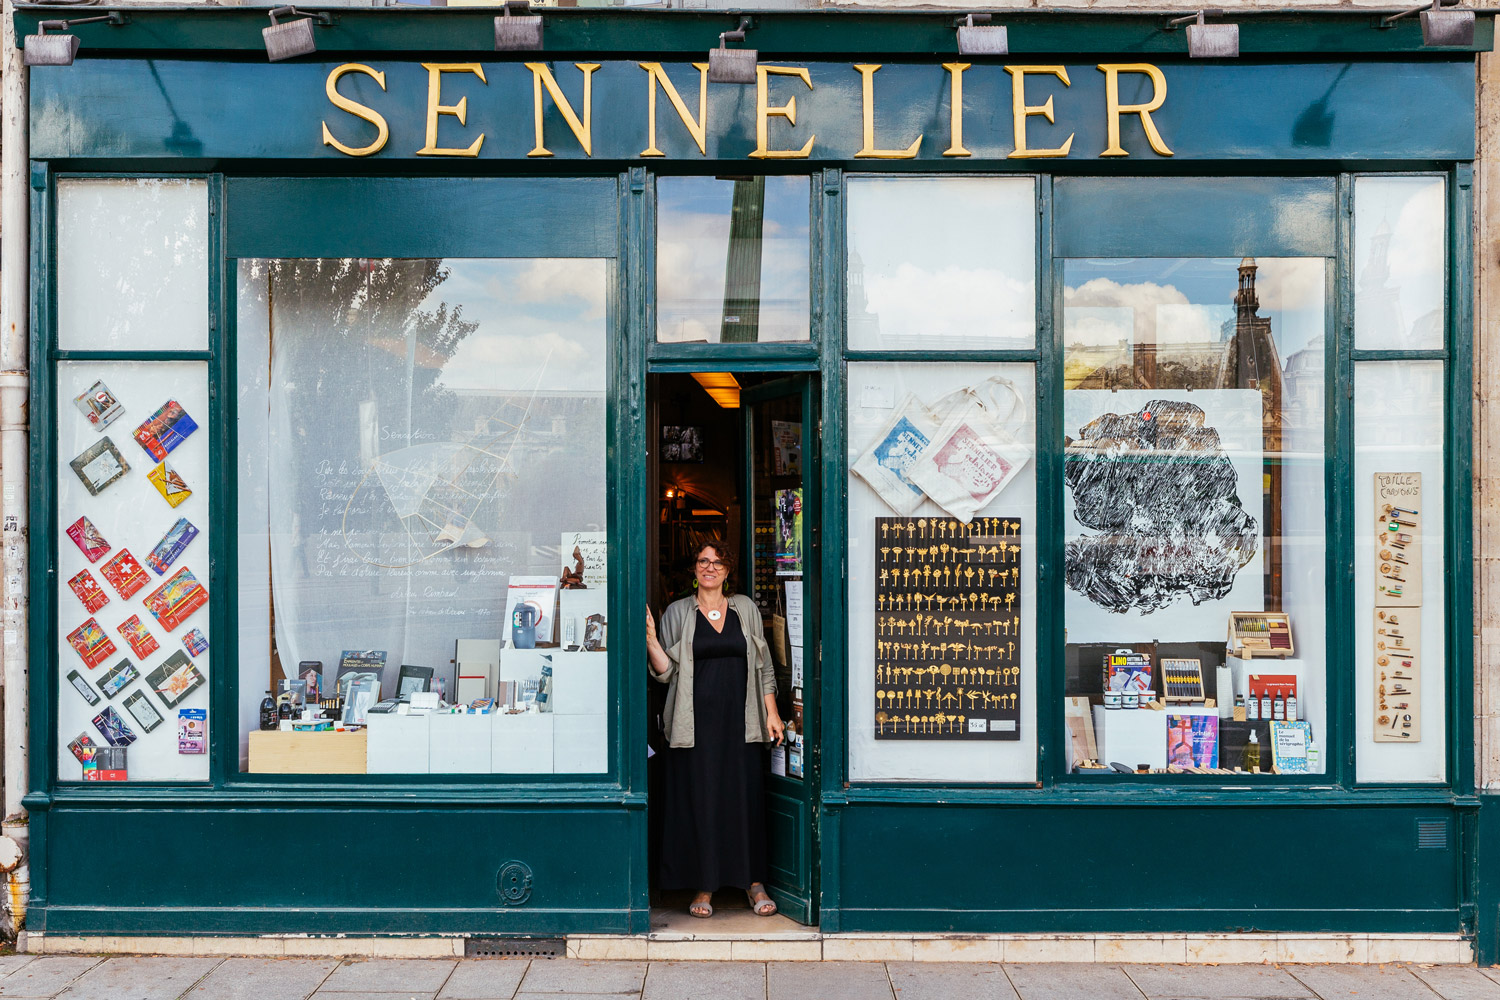 Sophie Sennelier carries on the arts business founded by her great grandfather